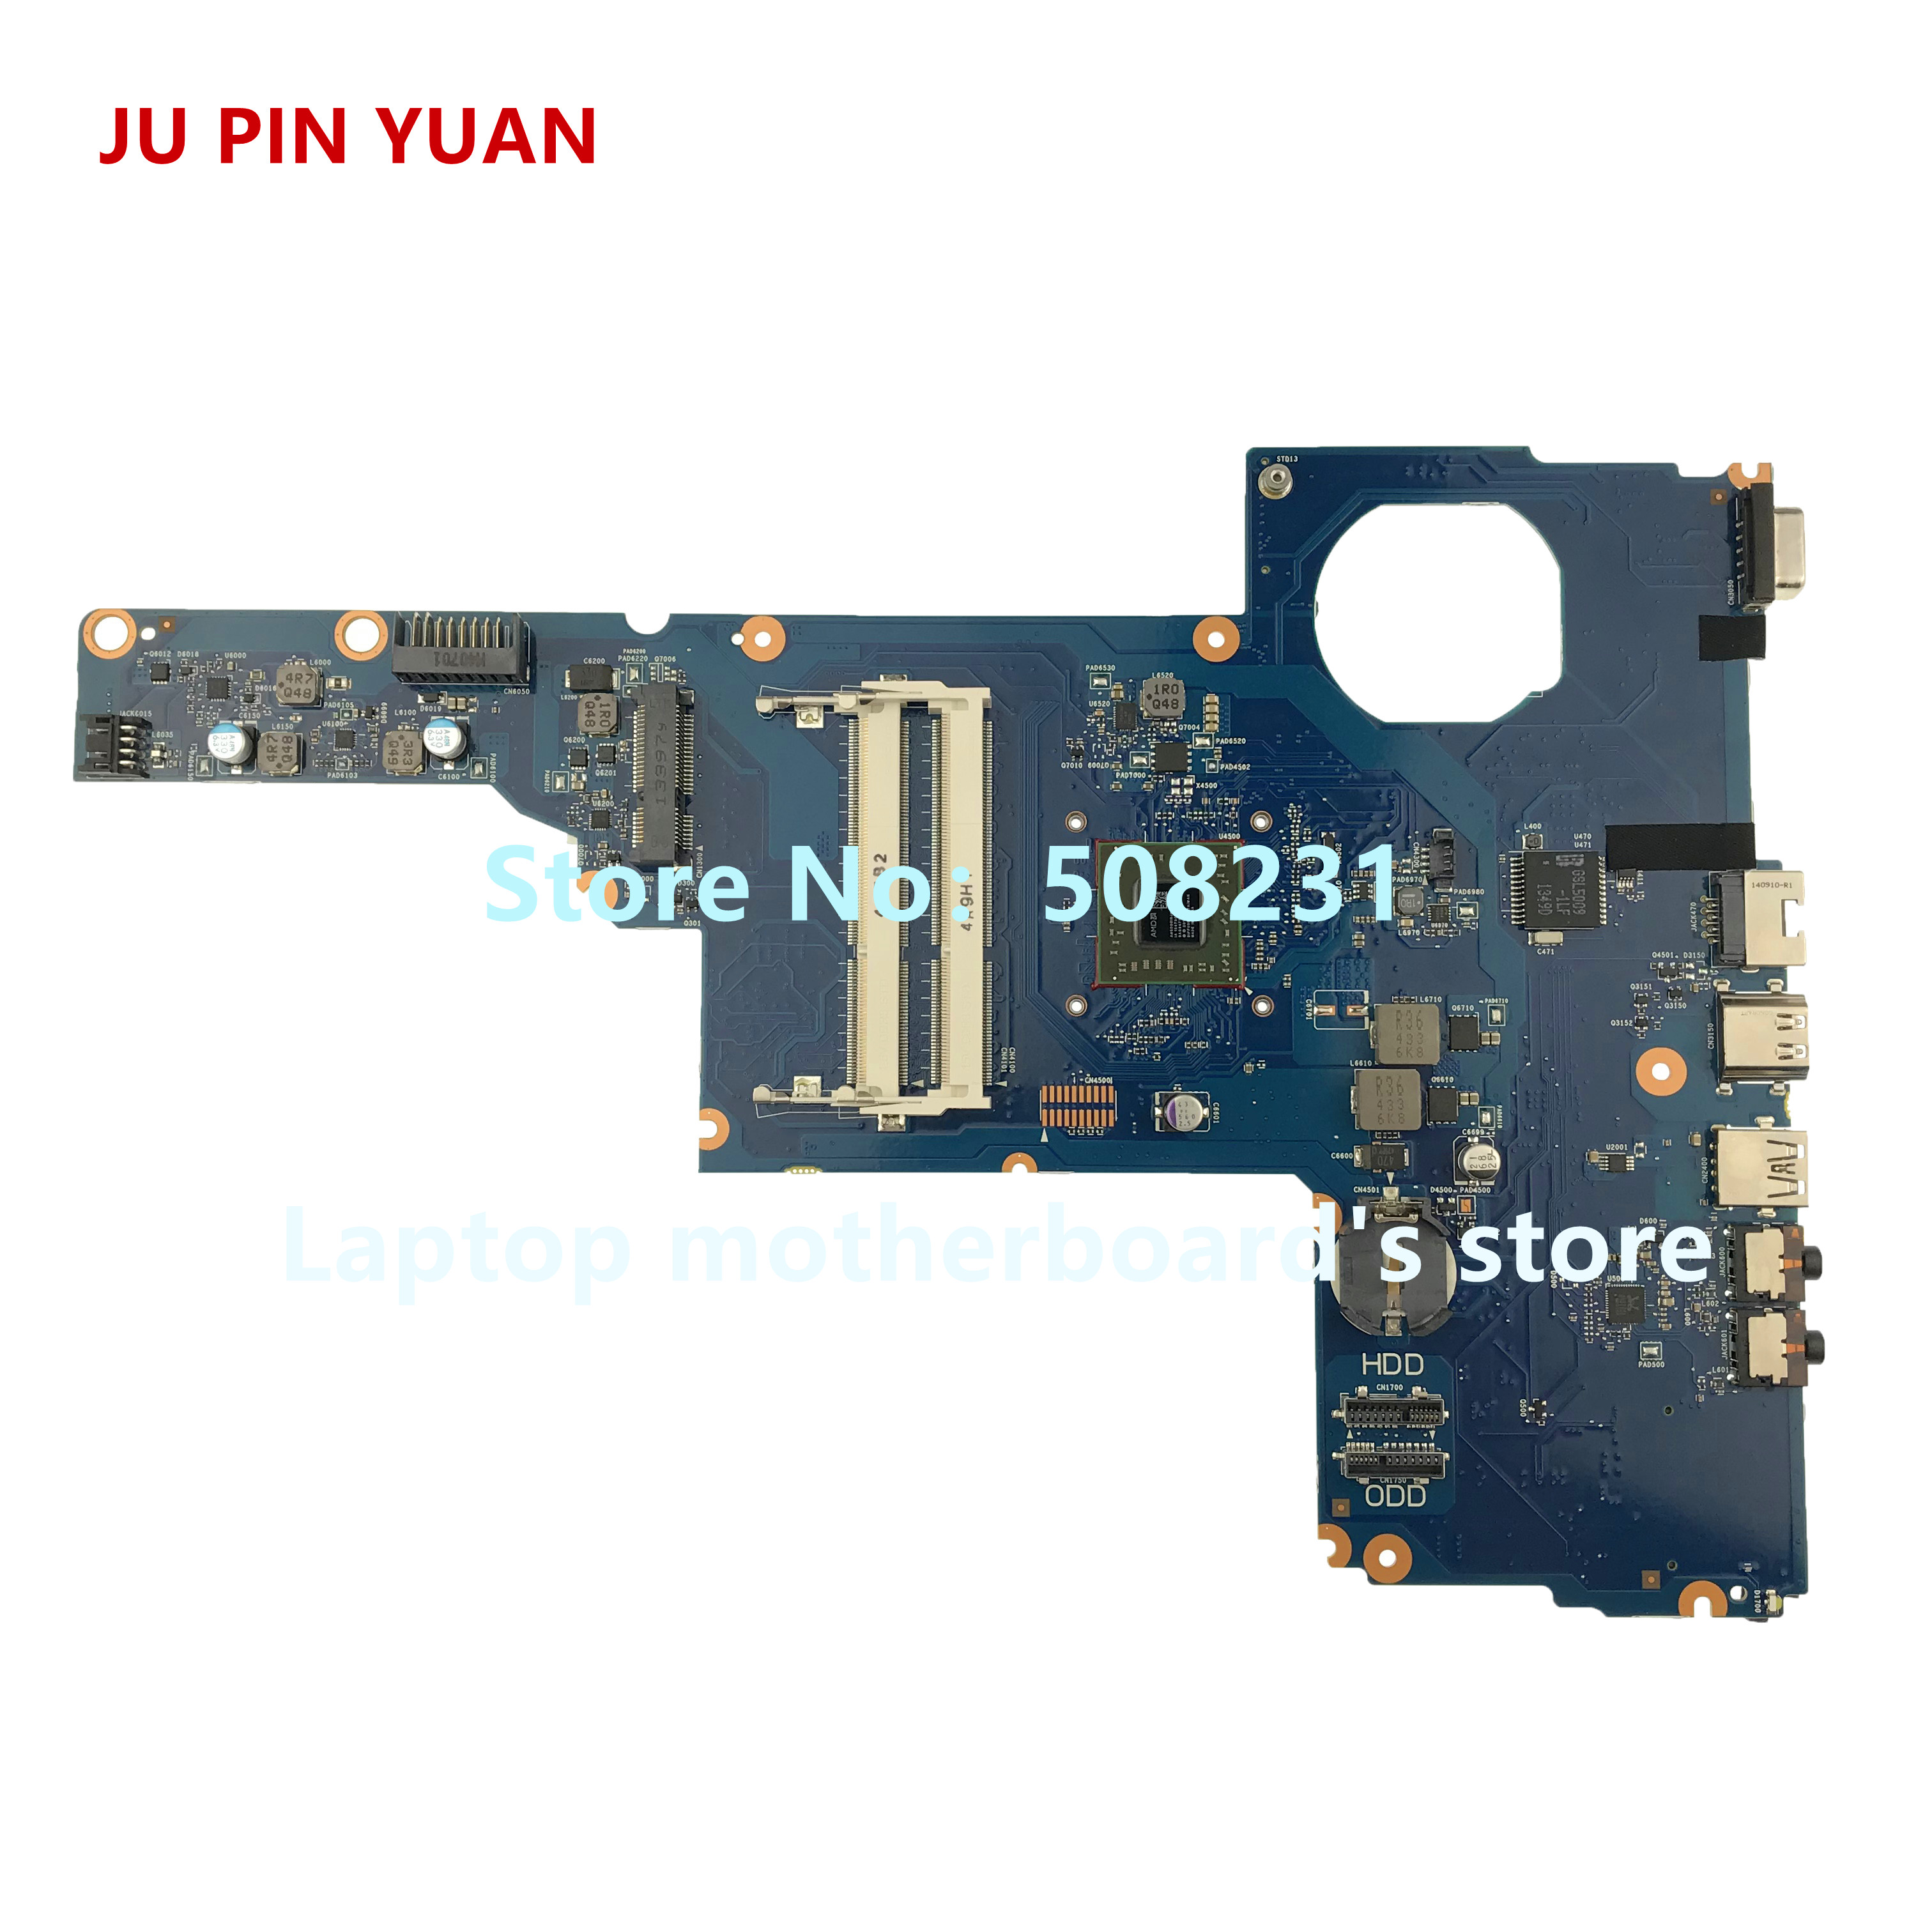 JU PIN YUAN 730671-601 730671-501 For HP 250 255 G1 Laptop Motherboard With A4-5000 TOBIN13-6050A2562701-MB-A02 fully TestedJU PIN YUAN 730671-601 730671-501 For HP 250 255 G1 Laptop Motherboard With A4-5000 TOBIN13-6050A2562701-MB-A02 fully Tested